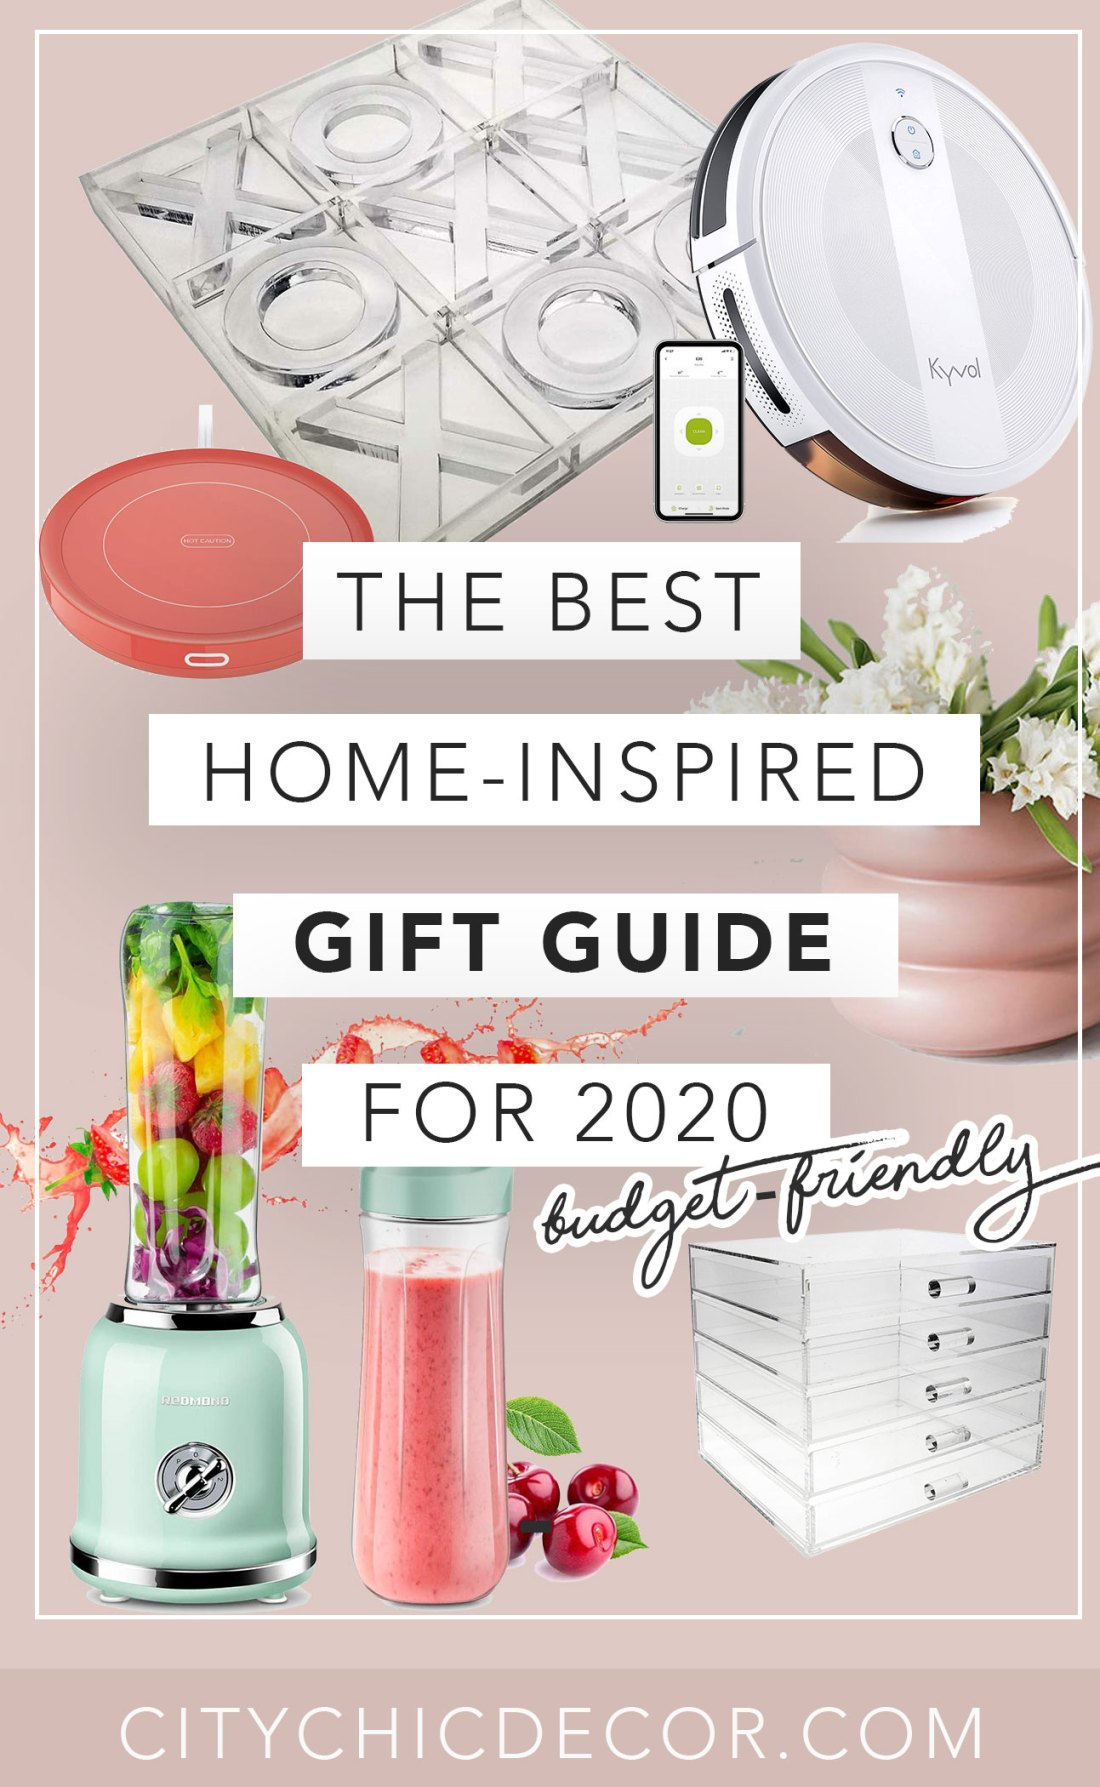 These affordable interior home decor gifts from Amazon will blow your family & your friends away. From chic decor to modern decorative accents and smart kitchen appliances, you'll be shocked with how budget-friendly these gifts are! #giftideas #affordablefurniture #affordablegiftideas #amazongifts #thingstobuyonamazon #giftsforbestfriends #interiorgifts #decorgifts